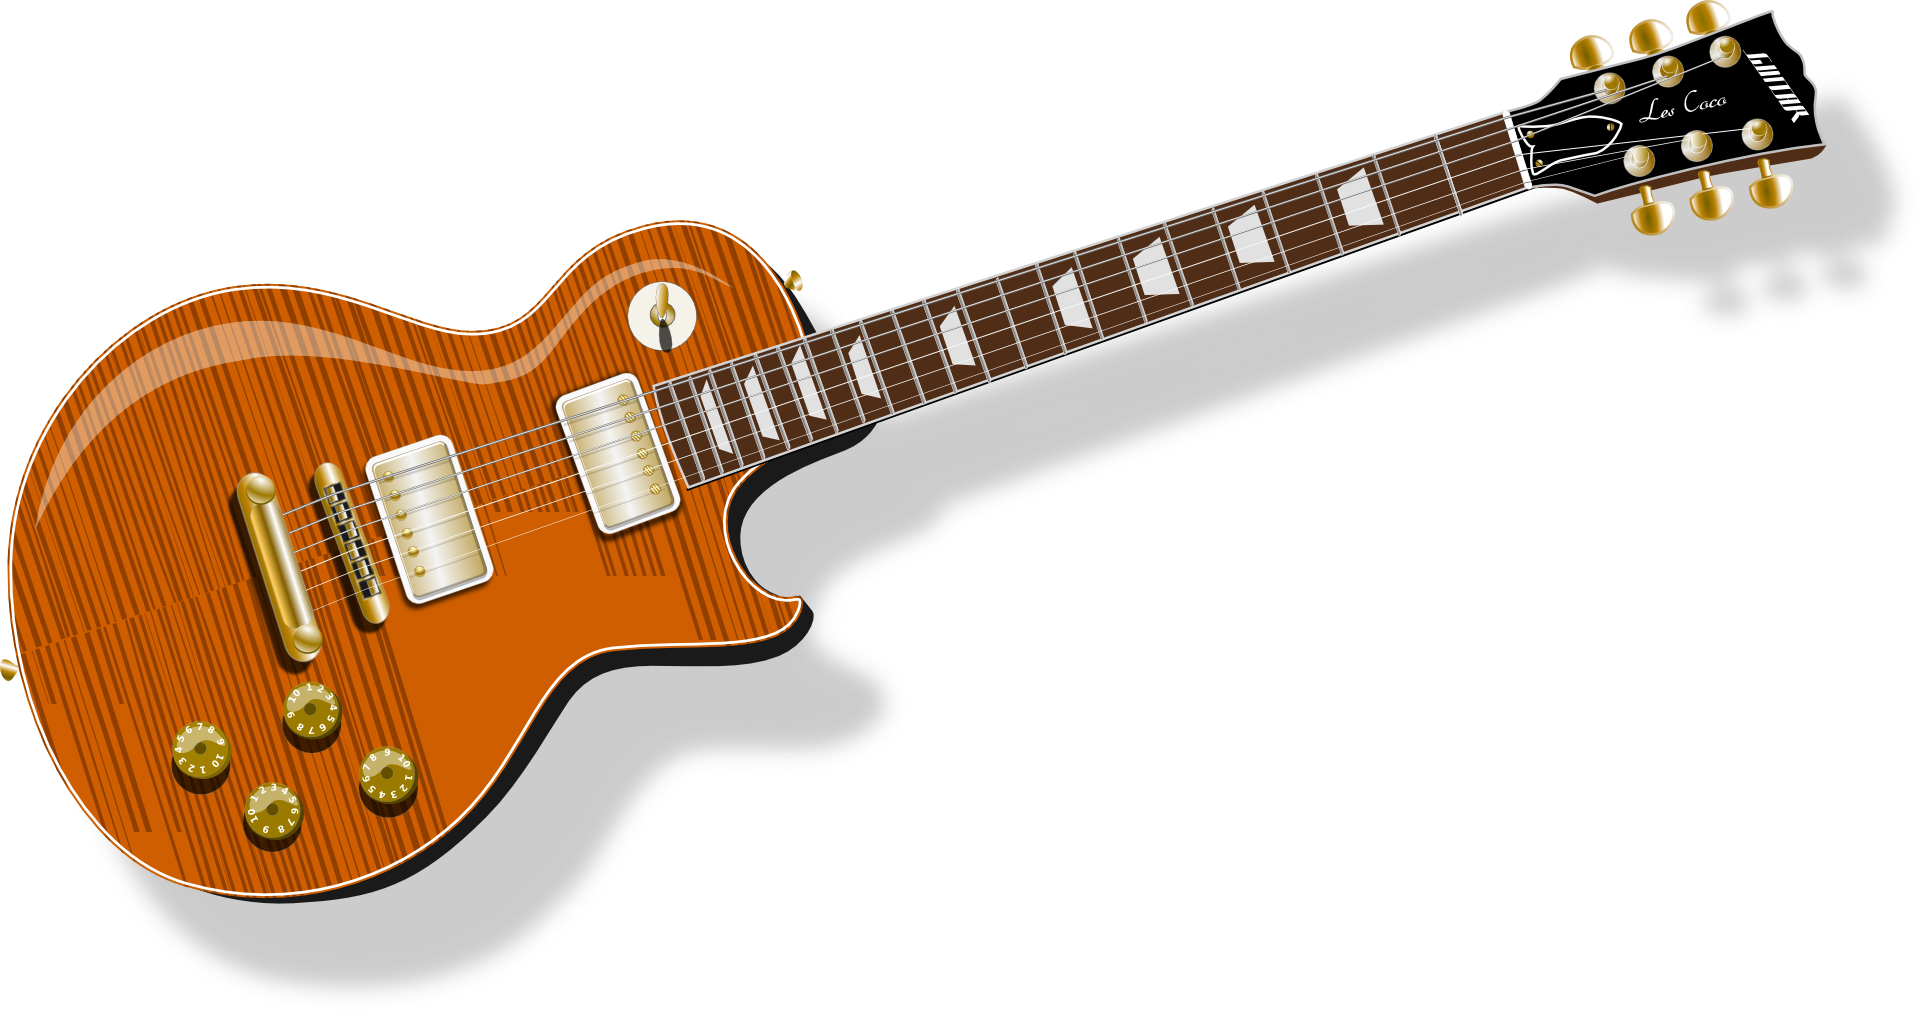 guitar electric gibson les paul n2 free image